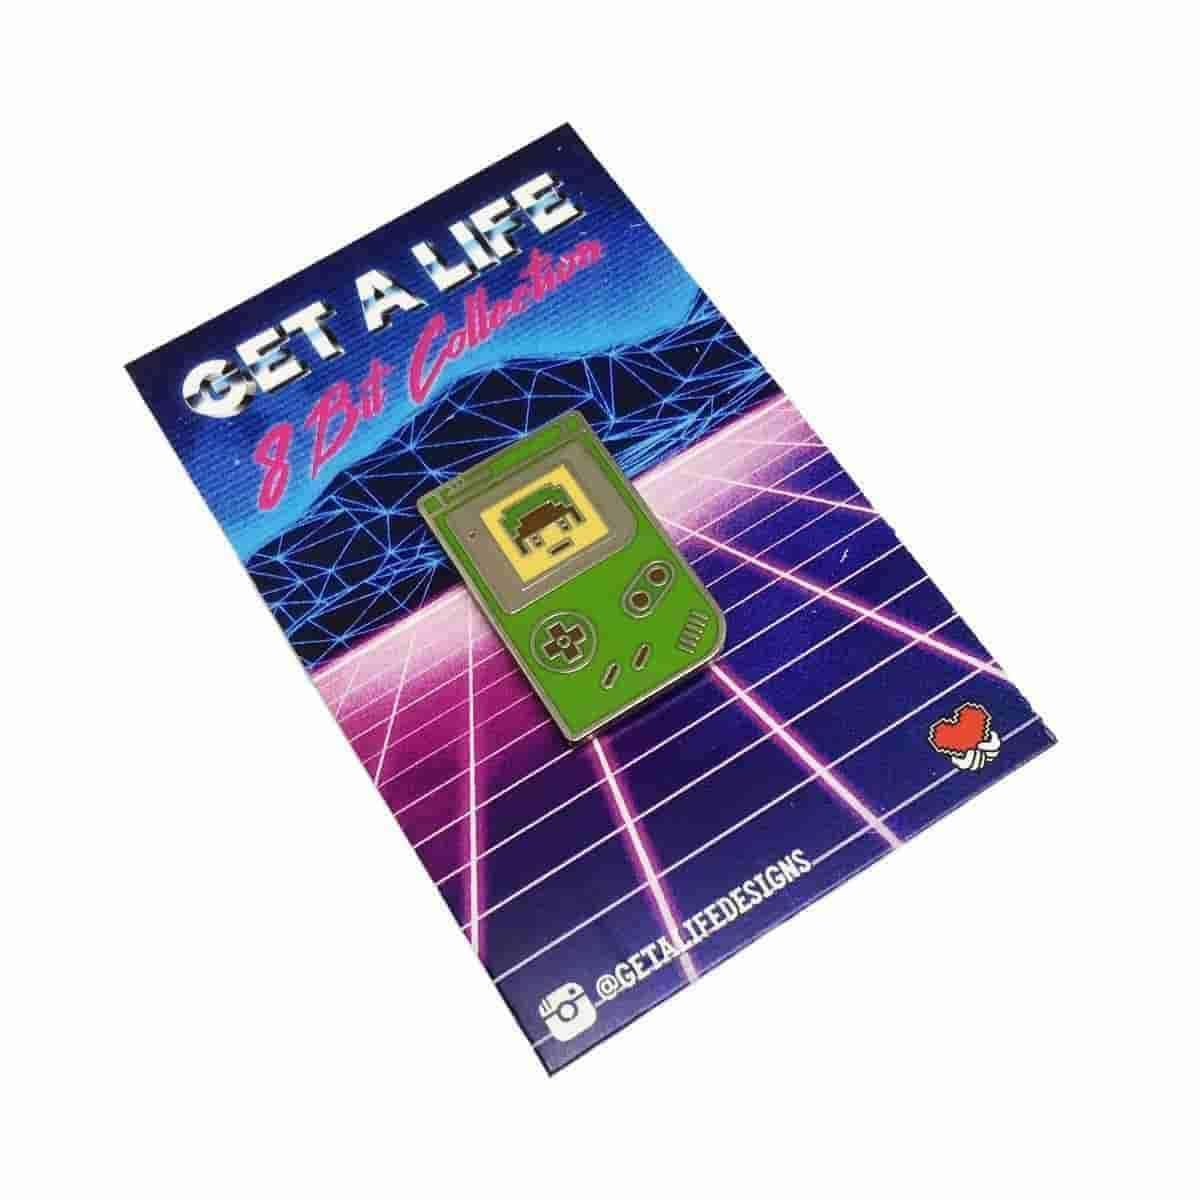 LINK: 8 BIT COLLECTION - Legend of Zelda Gameboy Hard Enamel Pin by Get A Life Designs - IamRetro.com